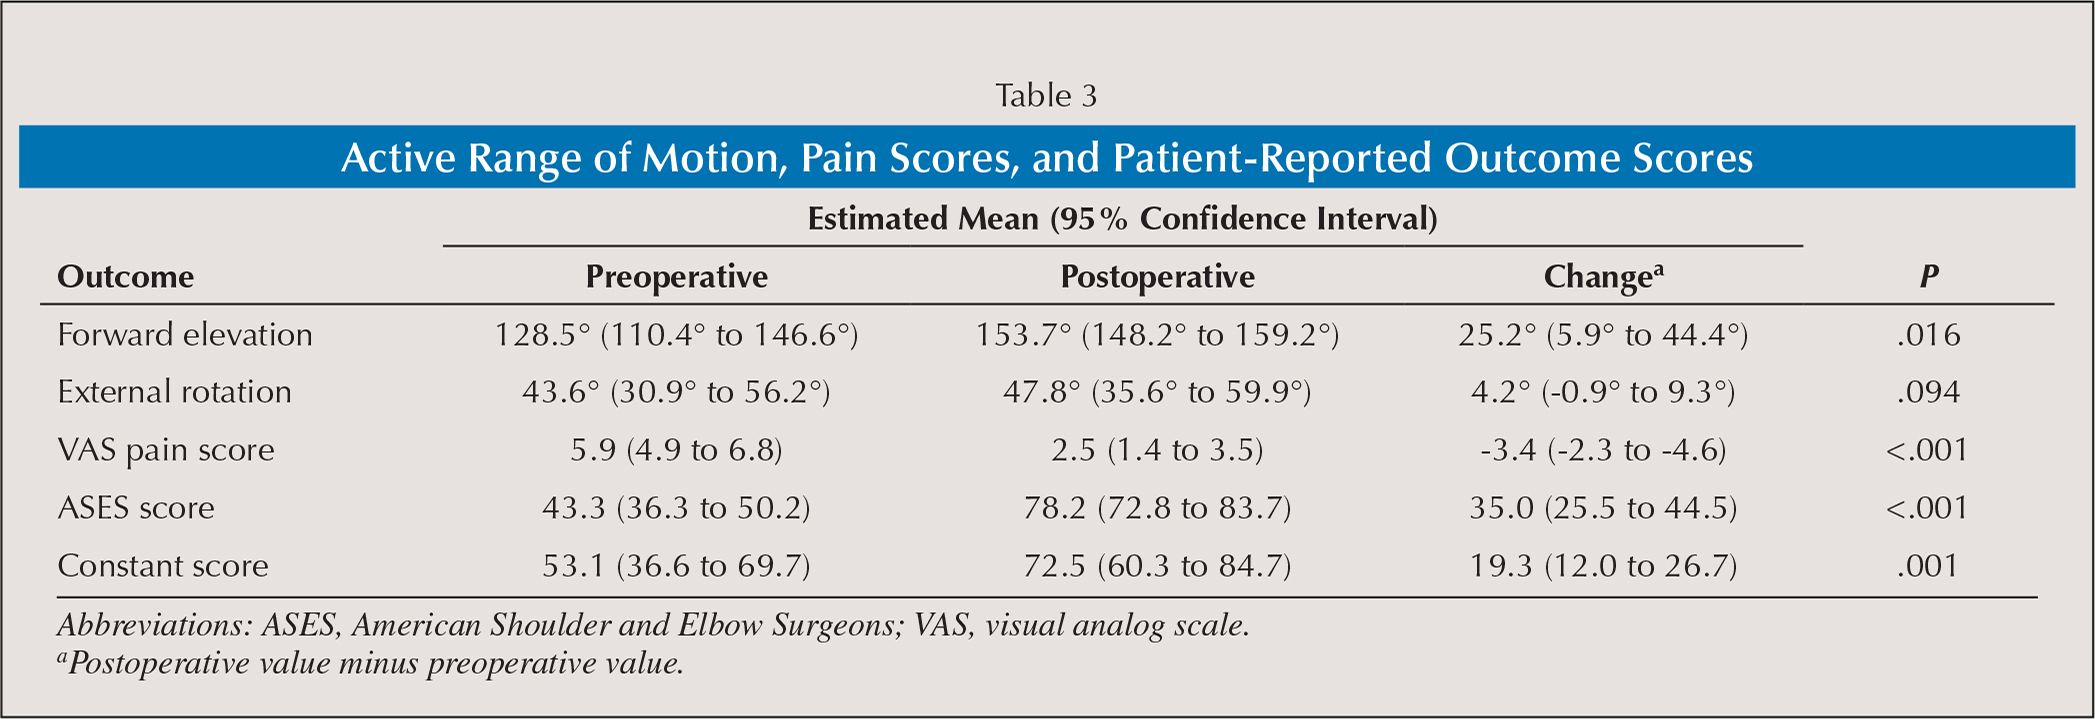 Active Range of Motion, Pain Scores, and Patient-Reported Outcome Scores